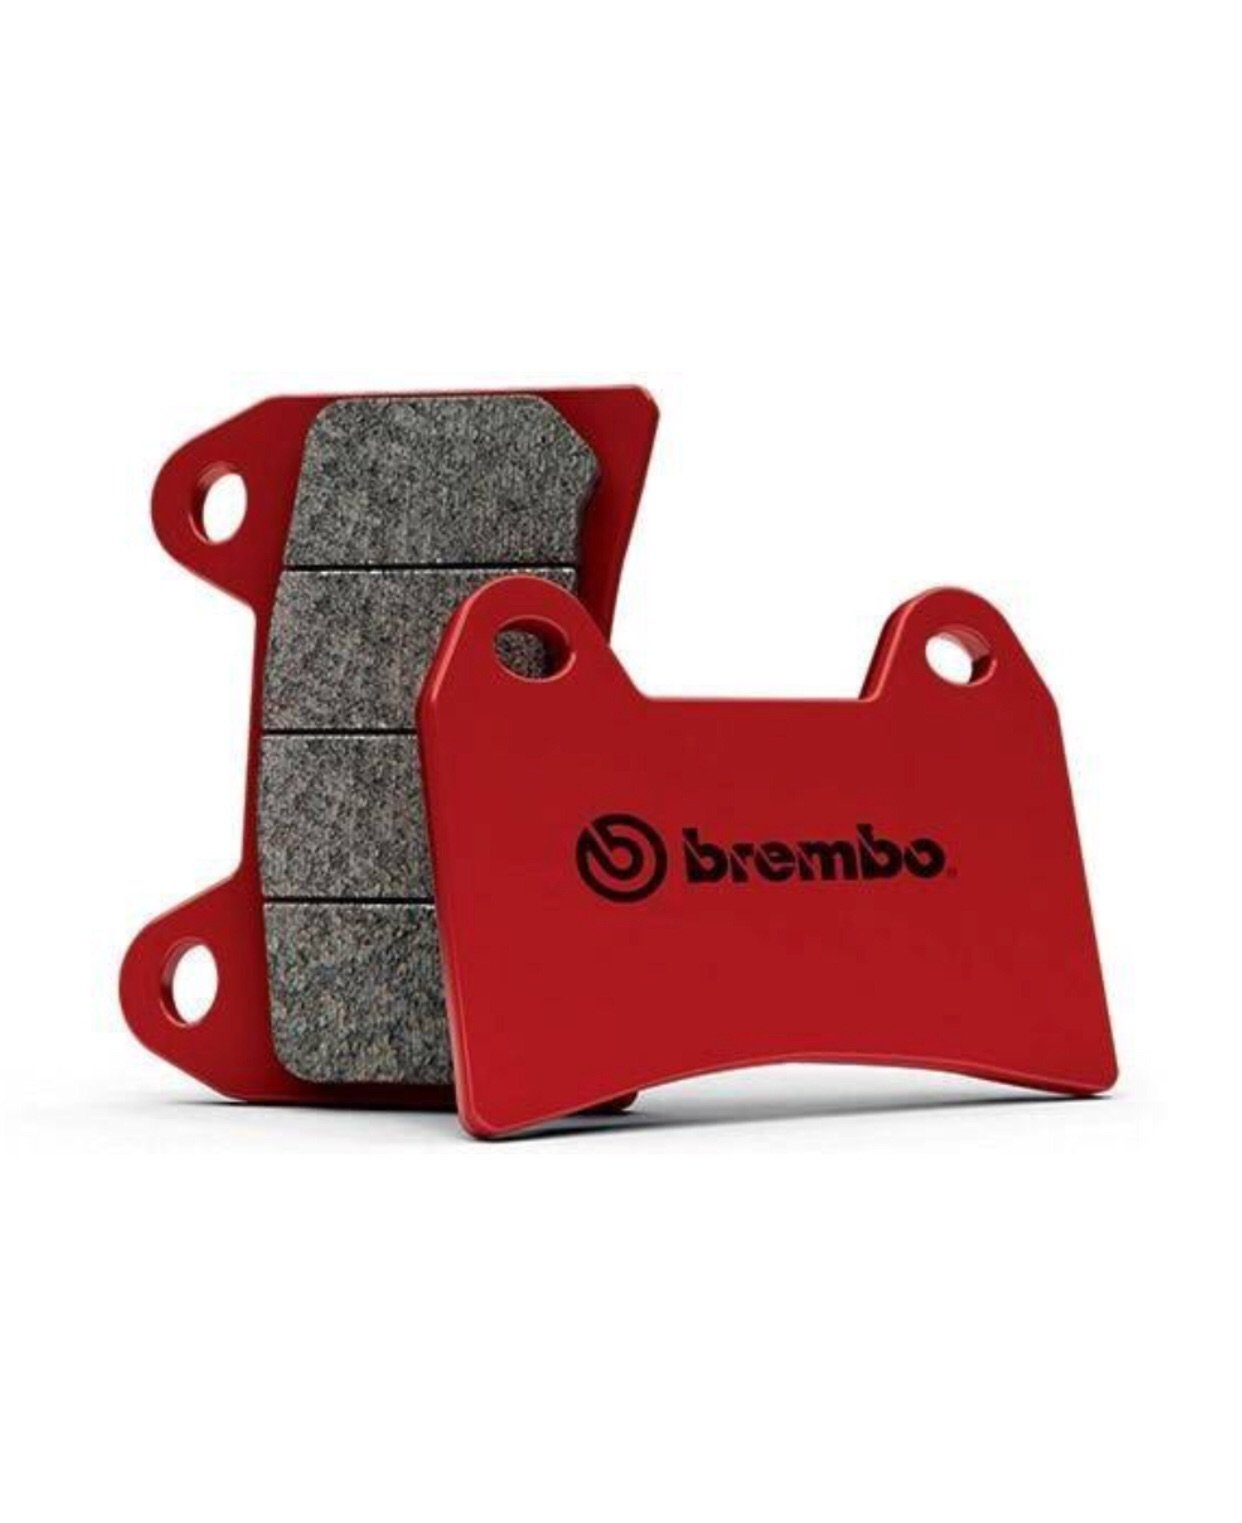 BMW, Brake Pads, Brembo - Race and Trackday Parts